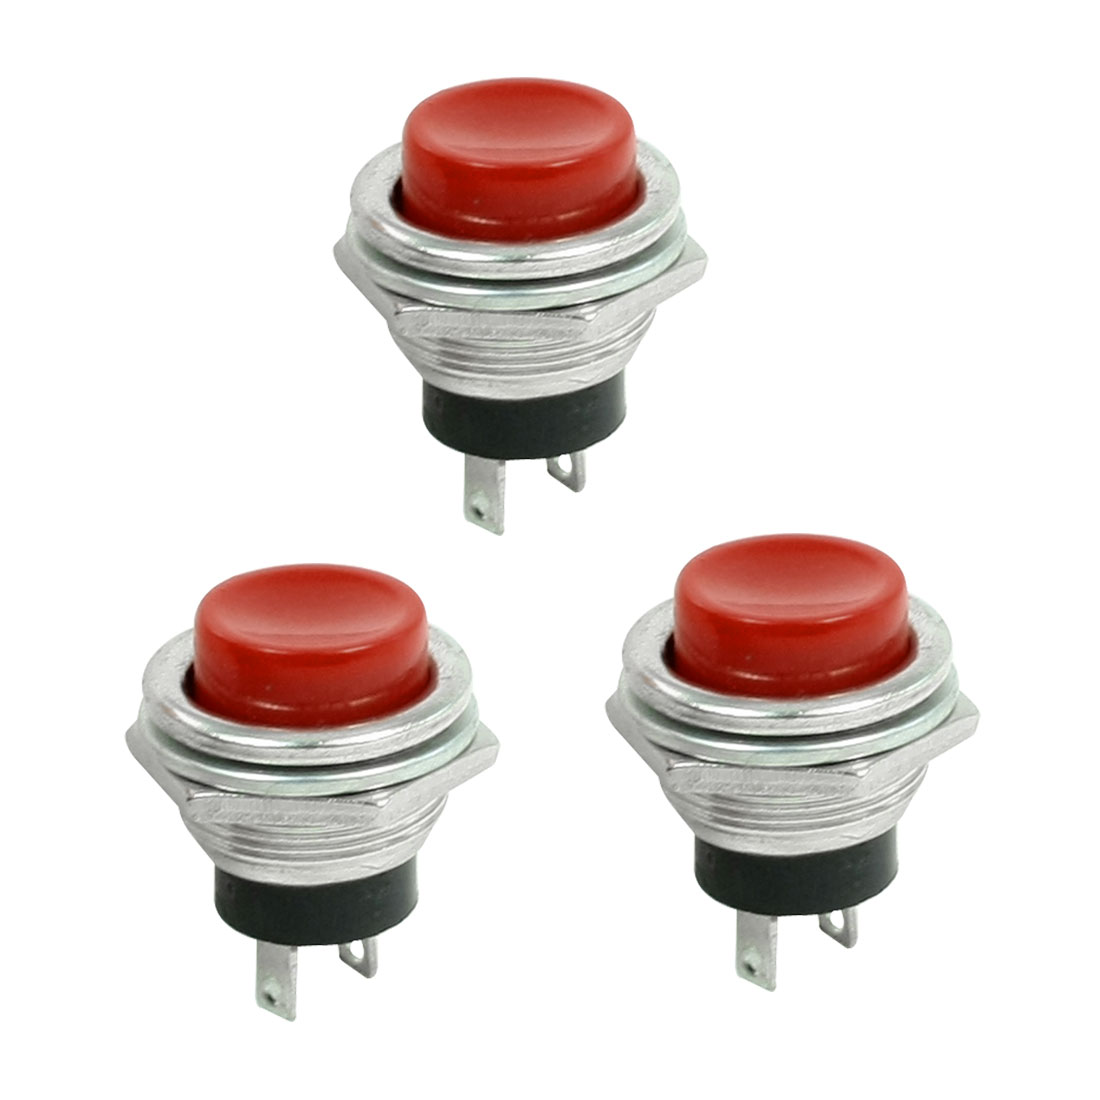 3 Pcs Red Cap SPST Momentary Panel Mount Pushbutton Switch AC 3A/125V